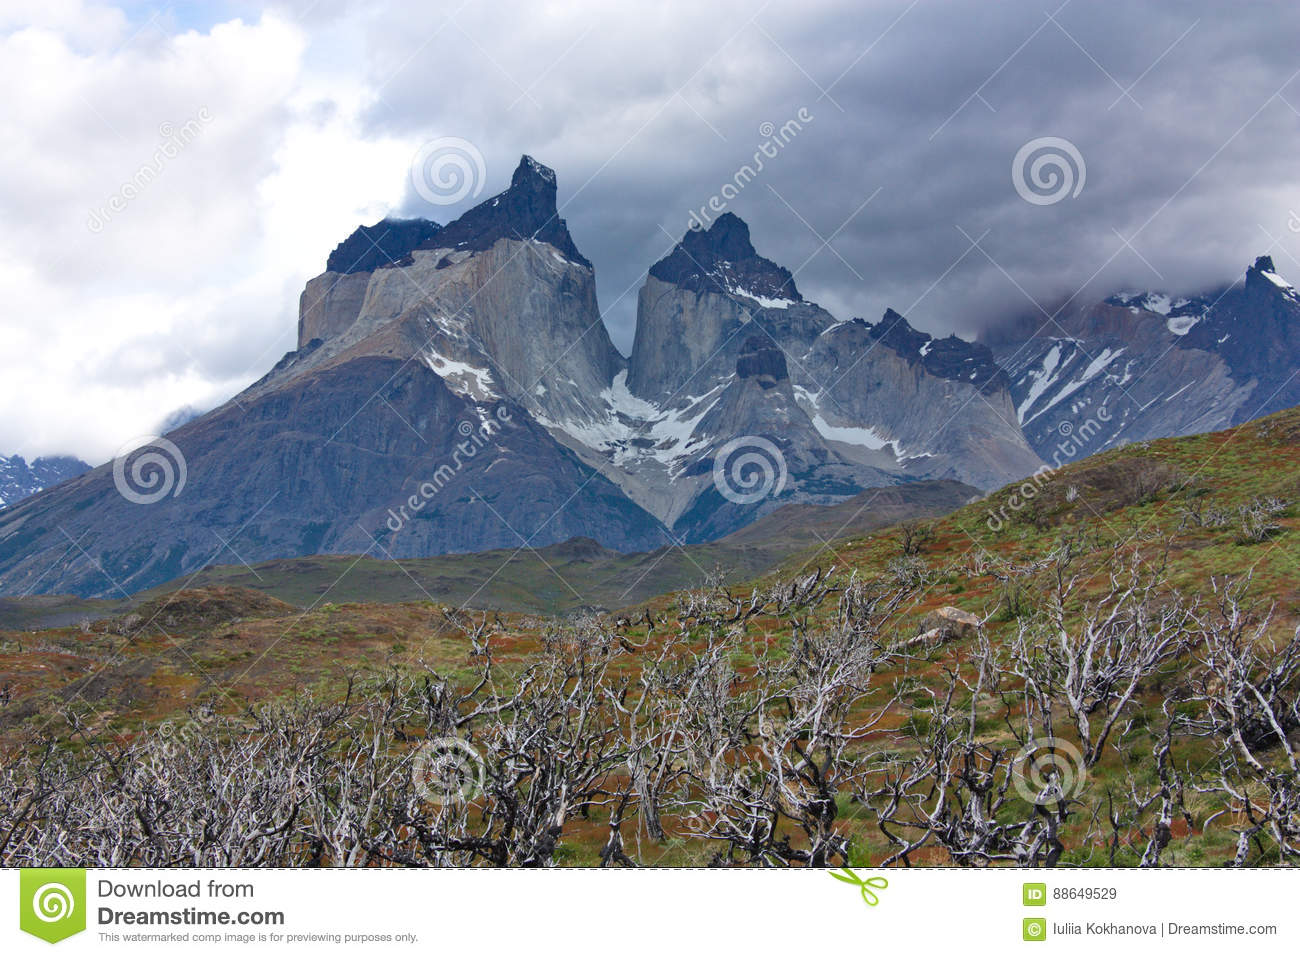 The burned-down trees against the background of Cuernos del Paine in national park of Torres del Paine in Chile